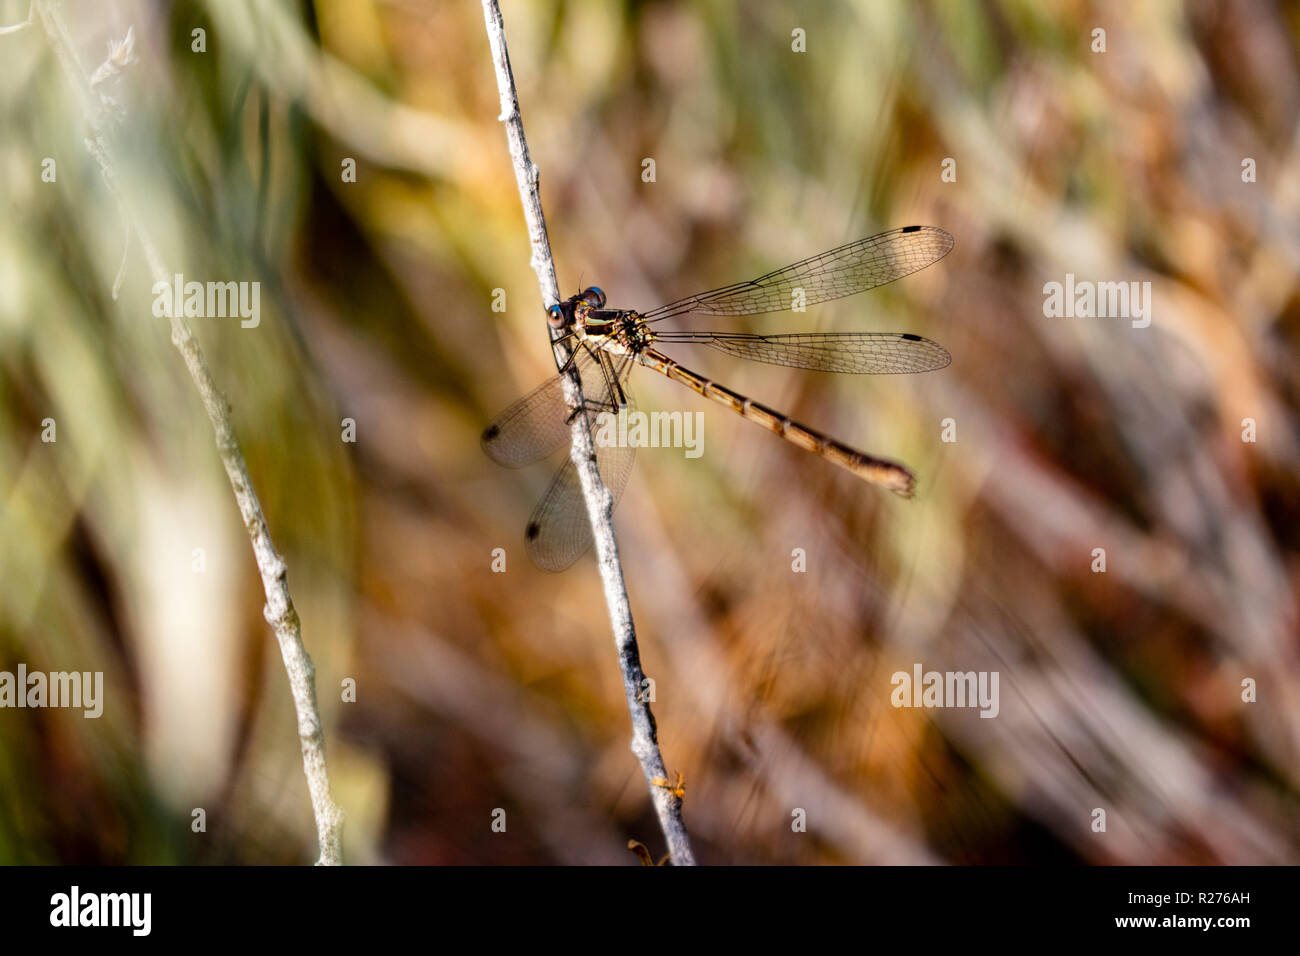 This is a picture of a dragonfly with its wings spread out and its hands holding on to a grayish stem. - Stock Image